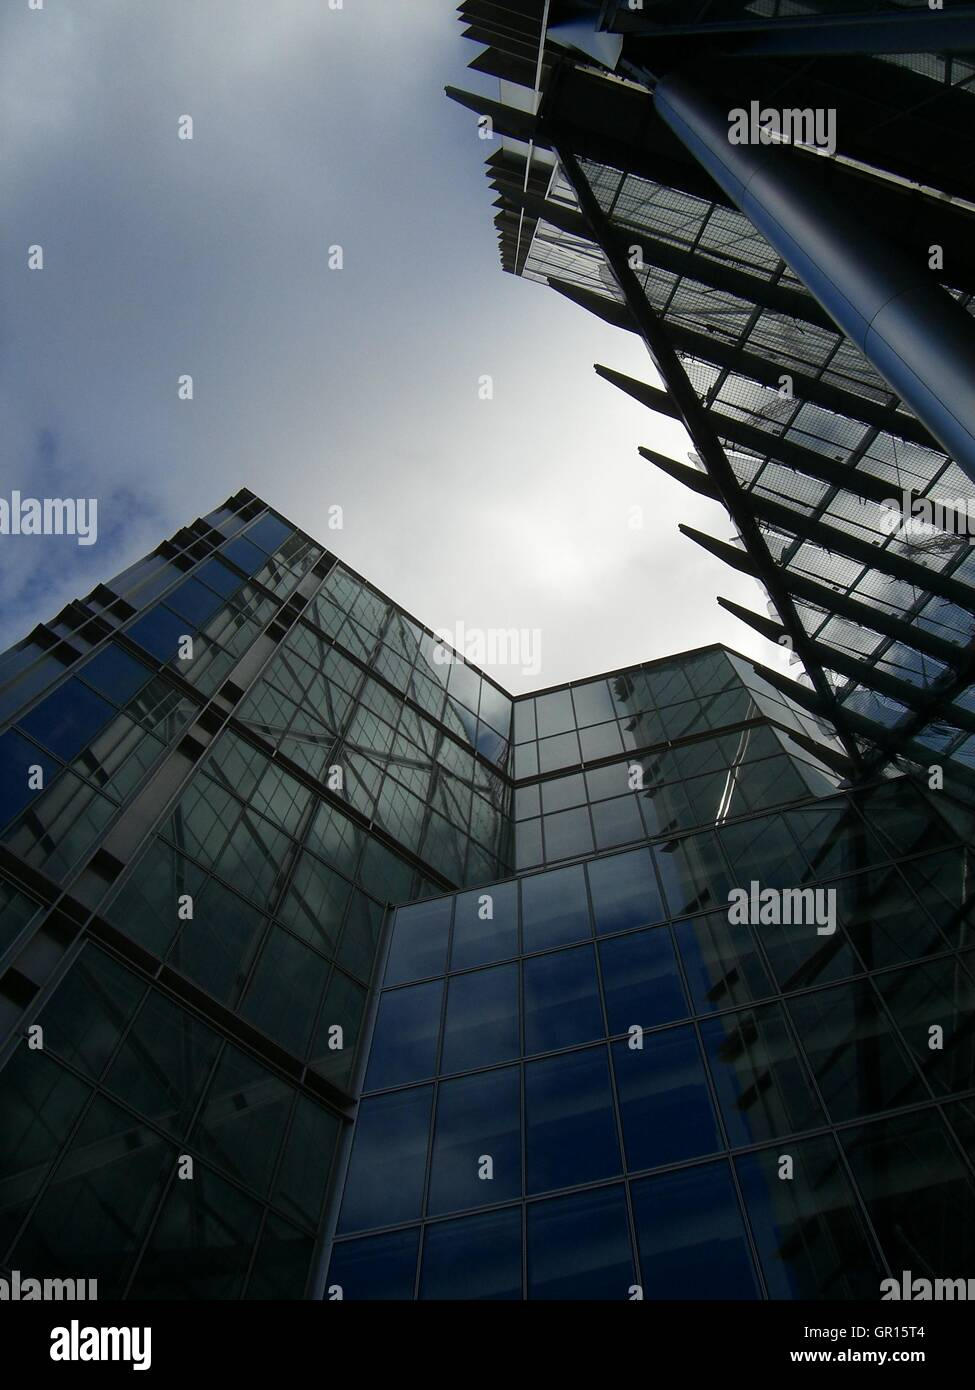 Looking up at a number of glass buildings with a grey sky - Stock Image